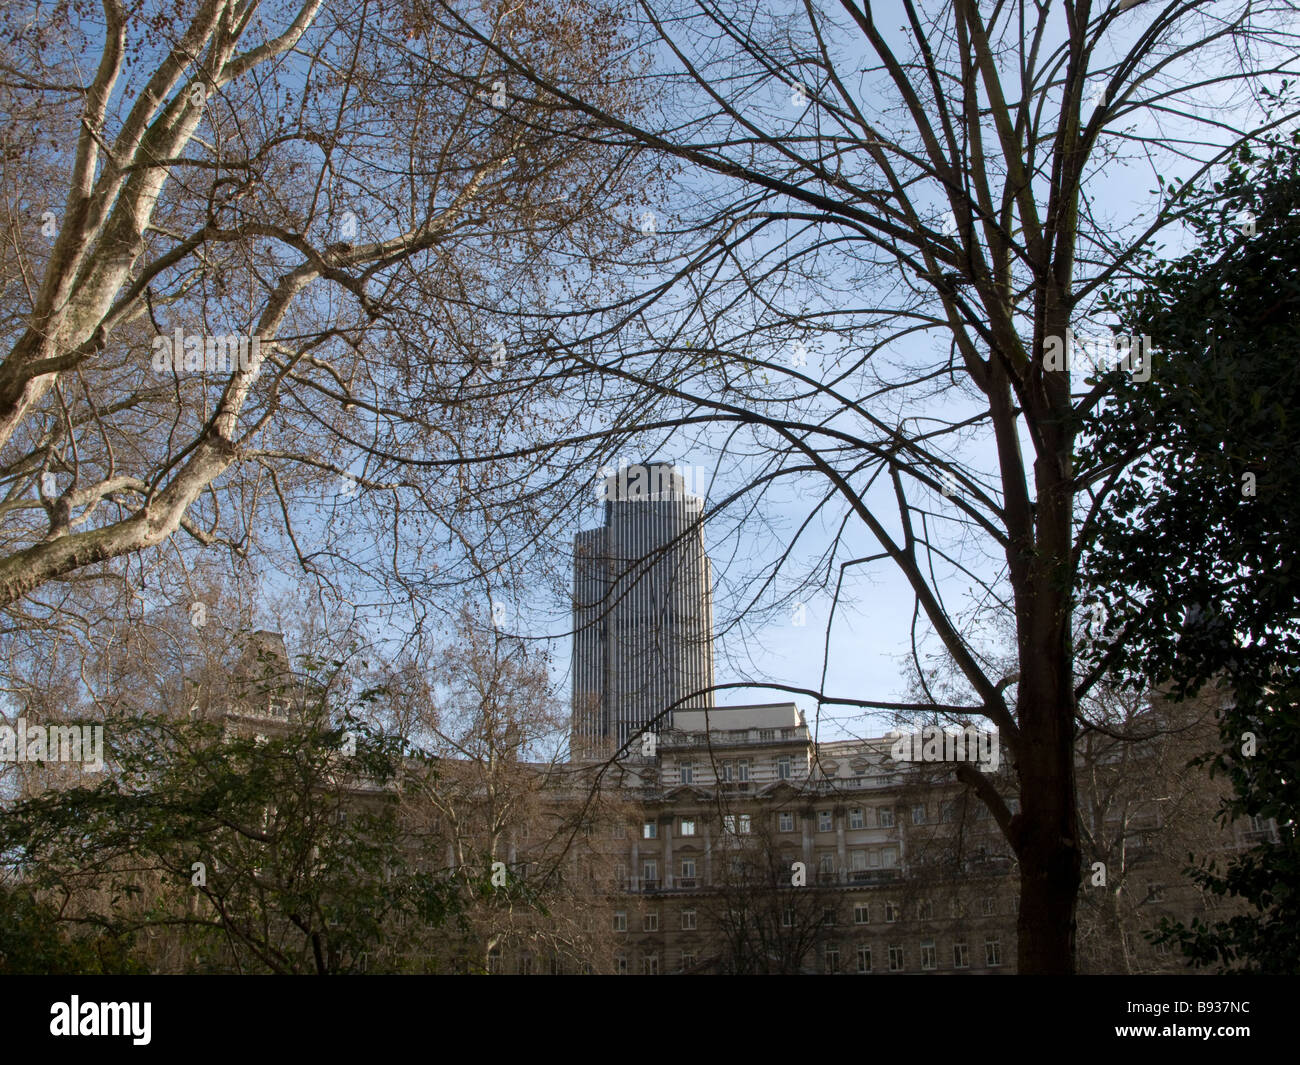 Tower 42 or NatWest Tower as seen from Finsbury Circus - Stock Image